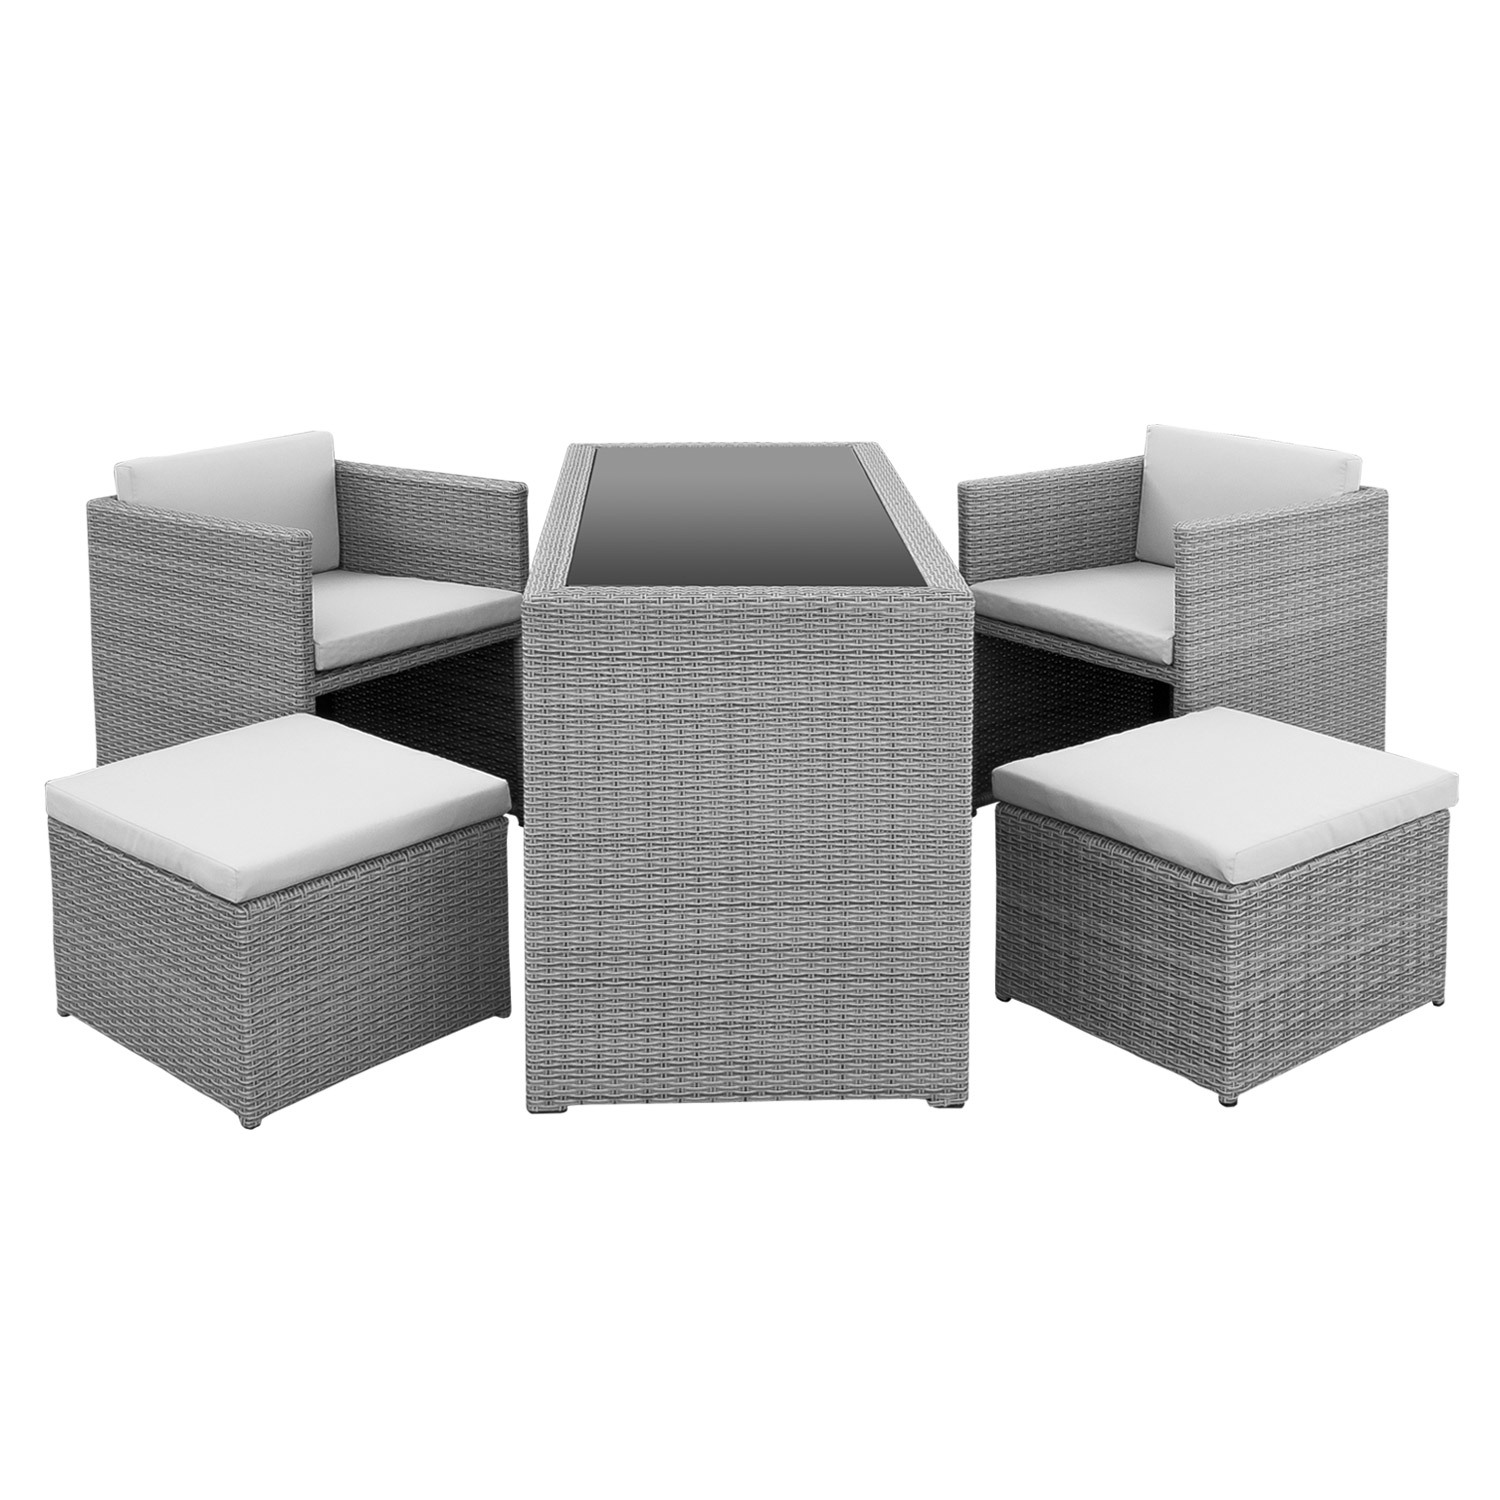 anndora bethari polyrattan gartenm bel hocker sessel. Black Bedroom Furniture Sets. Home Design Ideas